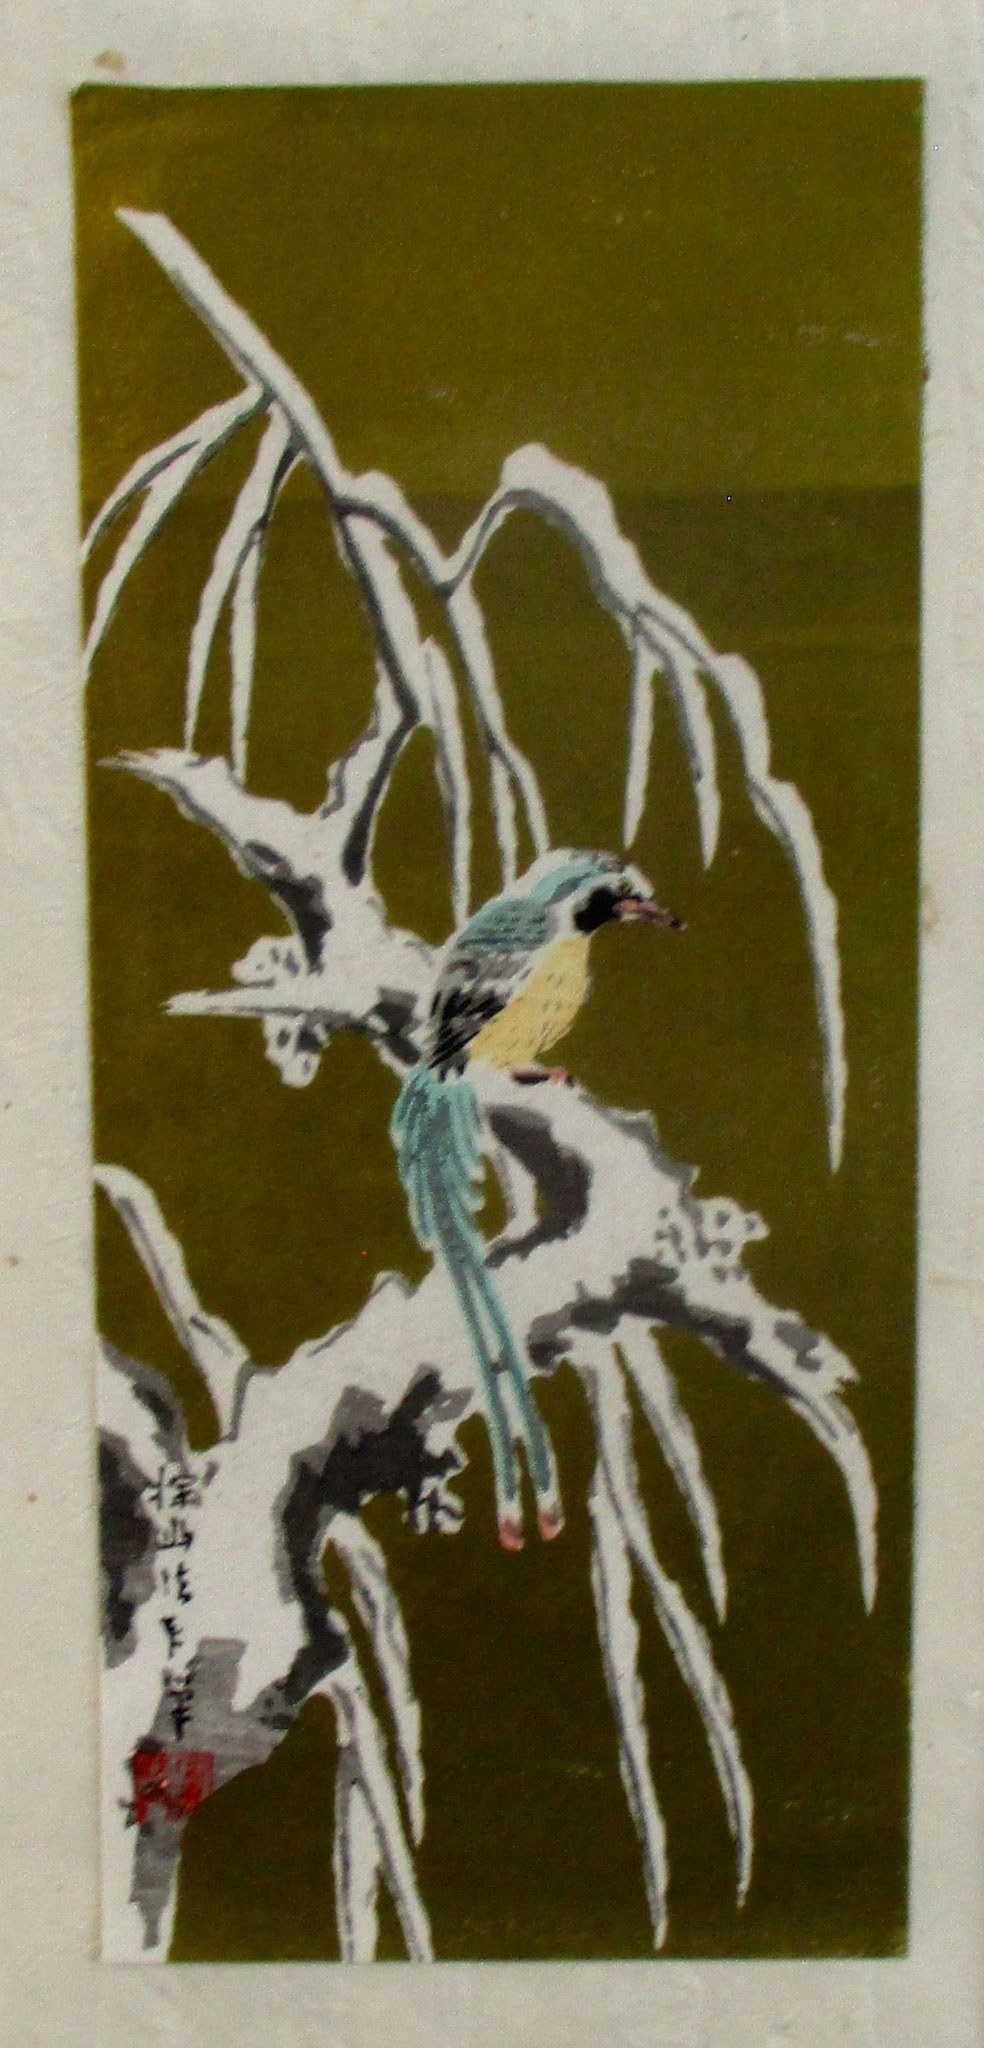 Parrot and Plum Tree オウムと梅の木 Vintage woodblock print, 11 x 14 matted, 2018 SOLD